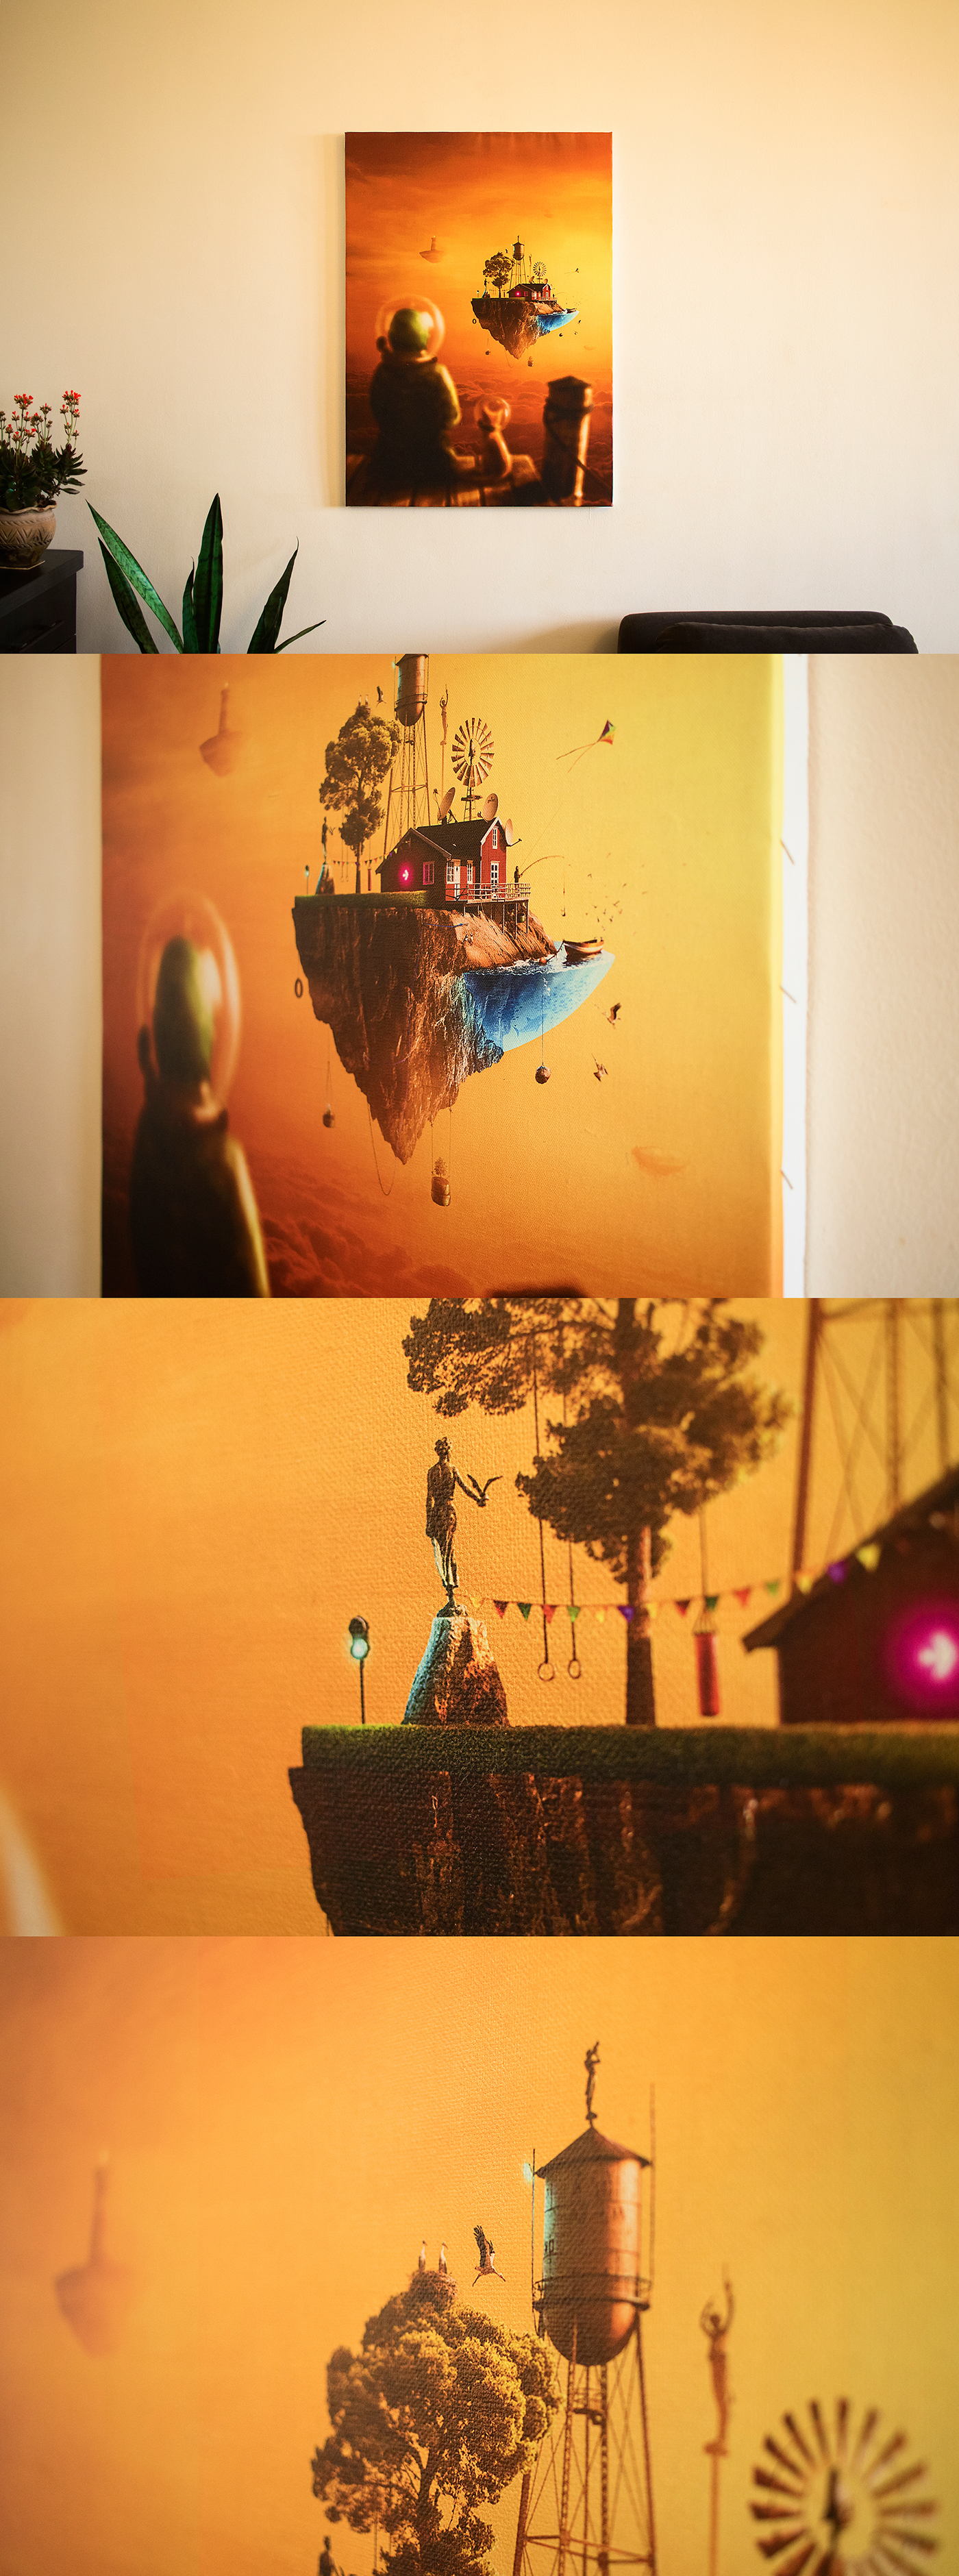 hello dreamland Flying Island Photo Manipulation  Matte Painting compositing people Covid 19 stay home